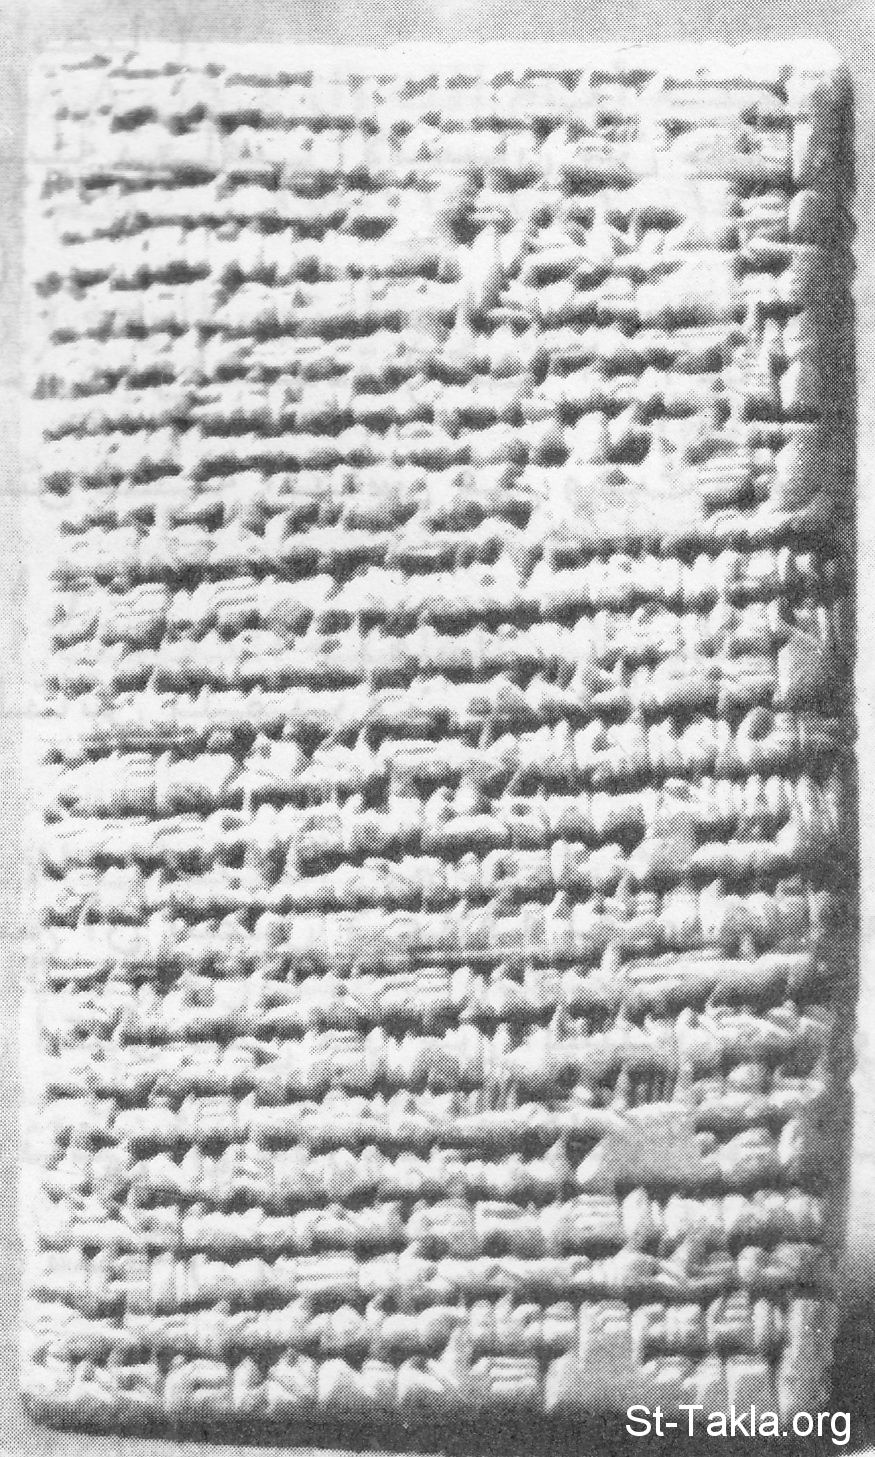 St-Takla.org Image: Stone engraving about a land that Jeremiah bought, and it shows the return of the people after the captivity and started the possession of lands. This tablet dates from 670 A. D. (compare Jer. 32: 8-15). صورة في موقع الأنبا تكلا: نقش حجري عن شراء إرميا بقطة أرض، وهي تعبر عن عودة الشعب من السبي وتلمُّك الأرض. وهذه اللوحة البابلية يرجع تاريخها إلى سنة 670 ق. م. (قارن إرميا 32: 8-15).